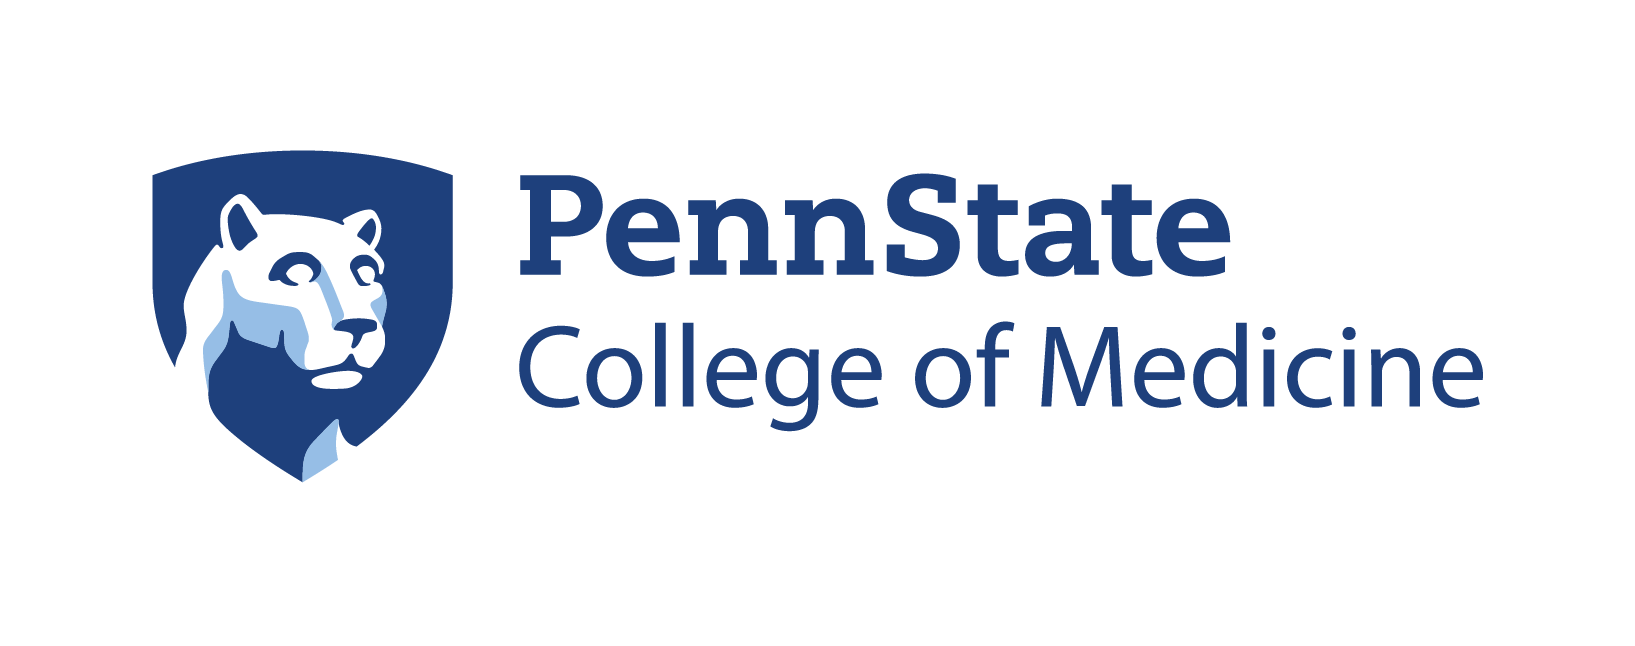 016 Penn State Essay Pennsylvania University College Of Medicine Secondary Formidable Samples Prompt 2017 Common App Full